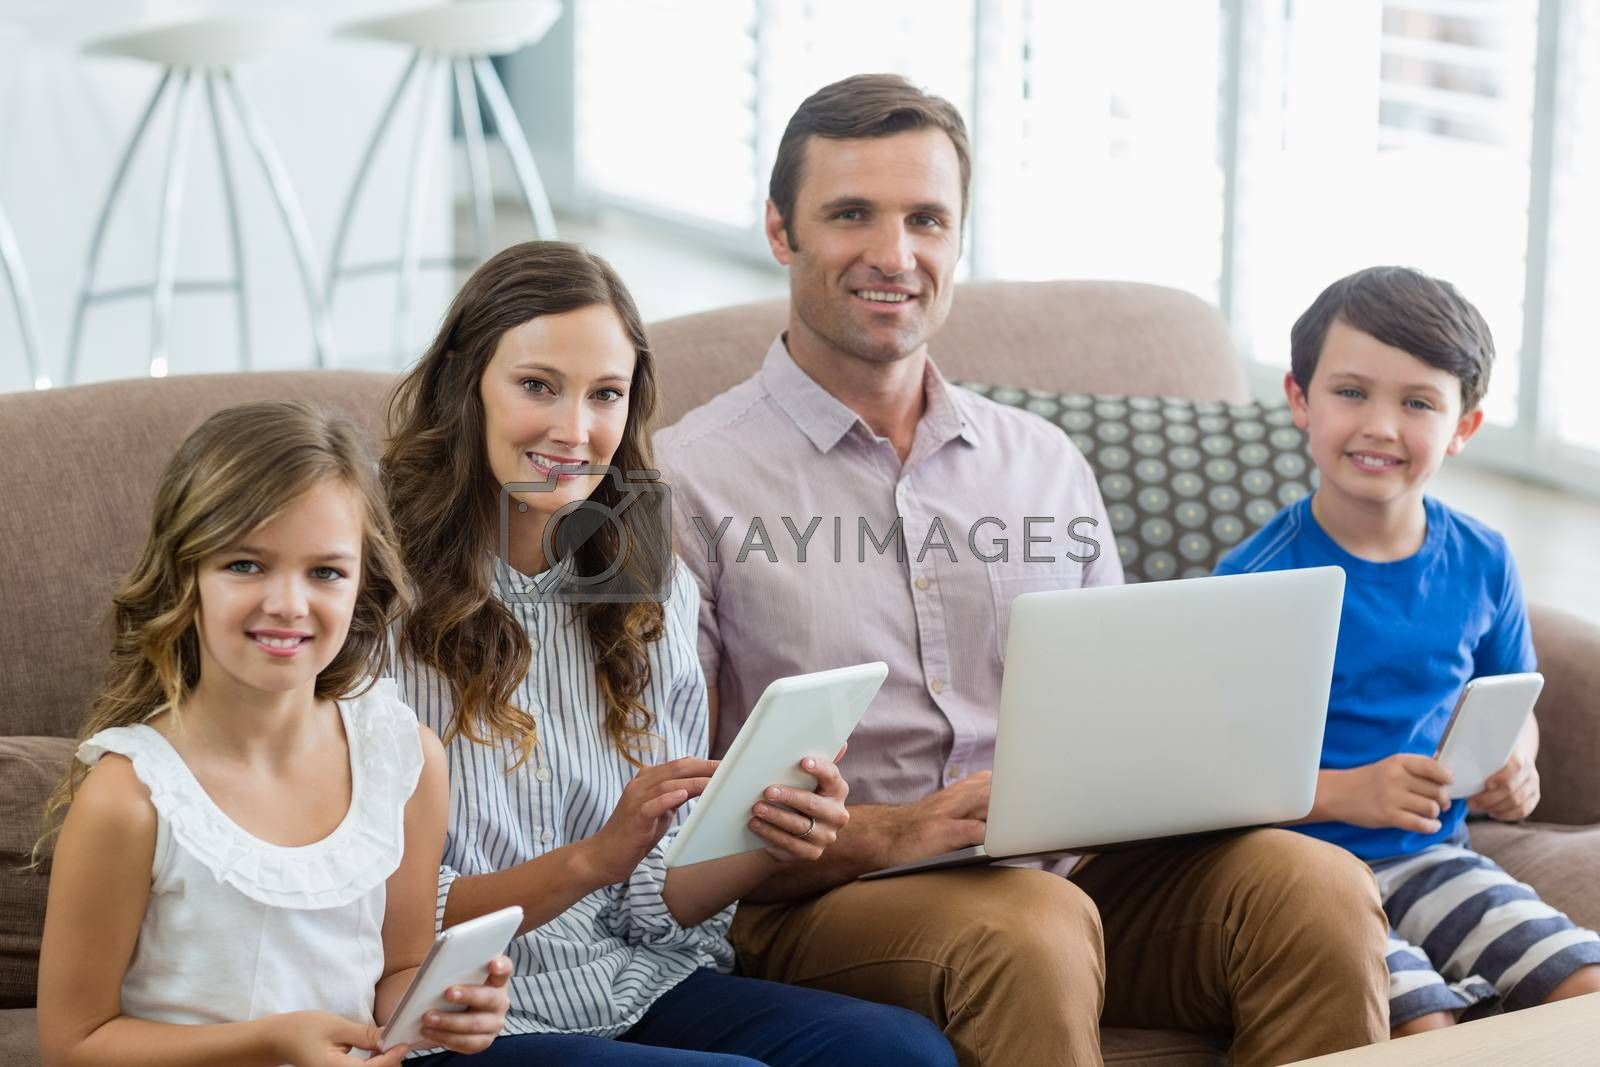 Portrait of smiling family using digital tablet, phone and laptop in living room at home